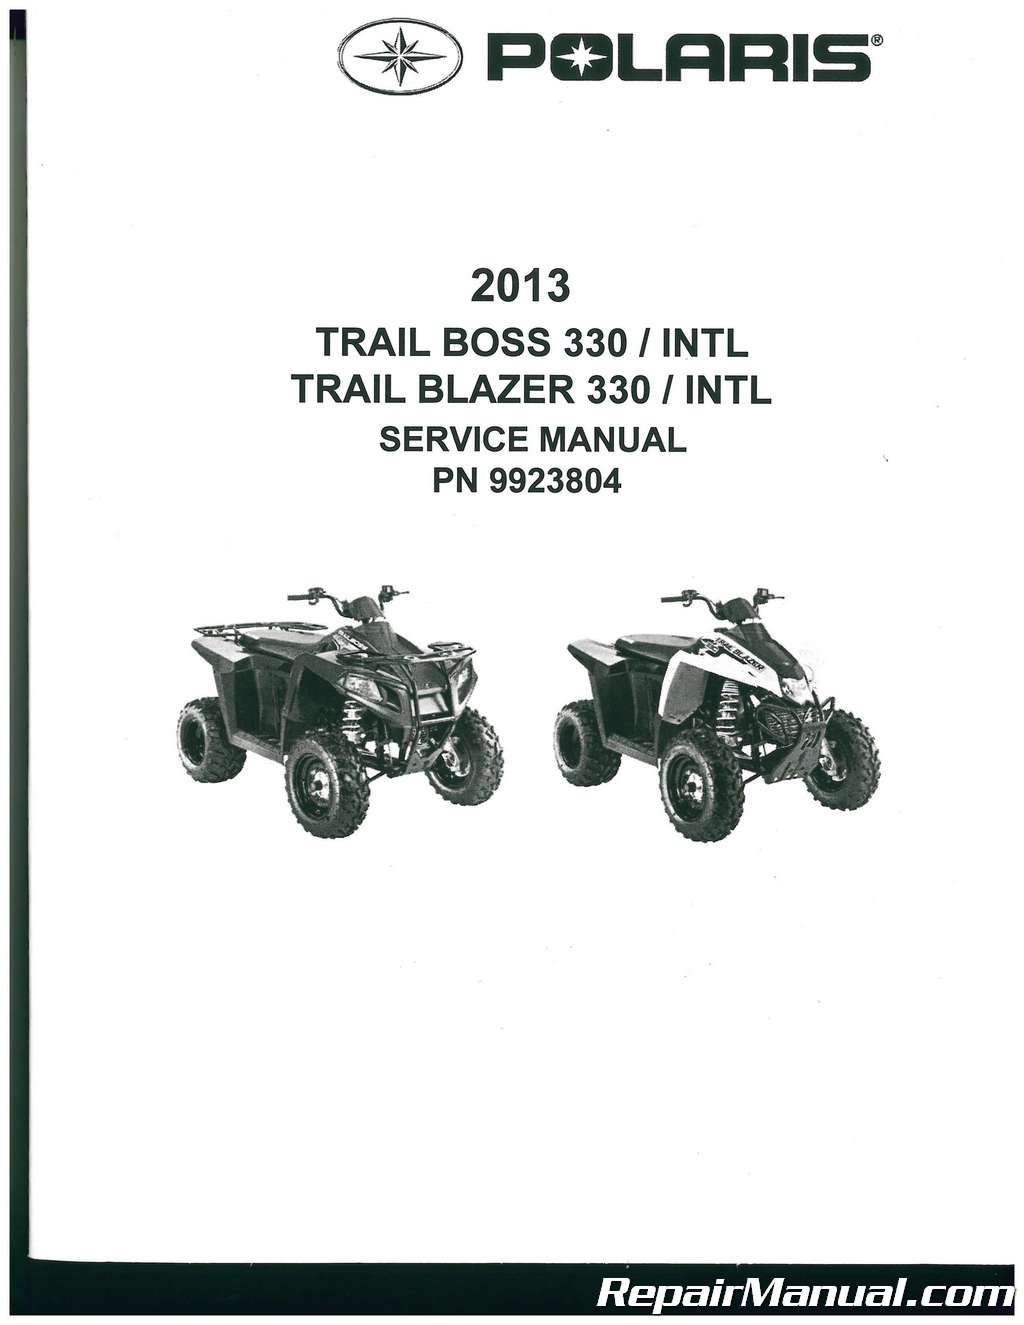 2013 Polaris Trail Boss 330 Trail Blazer 330 ATV Service